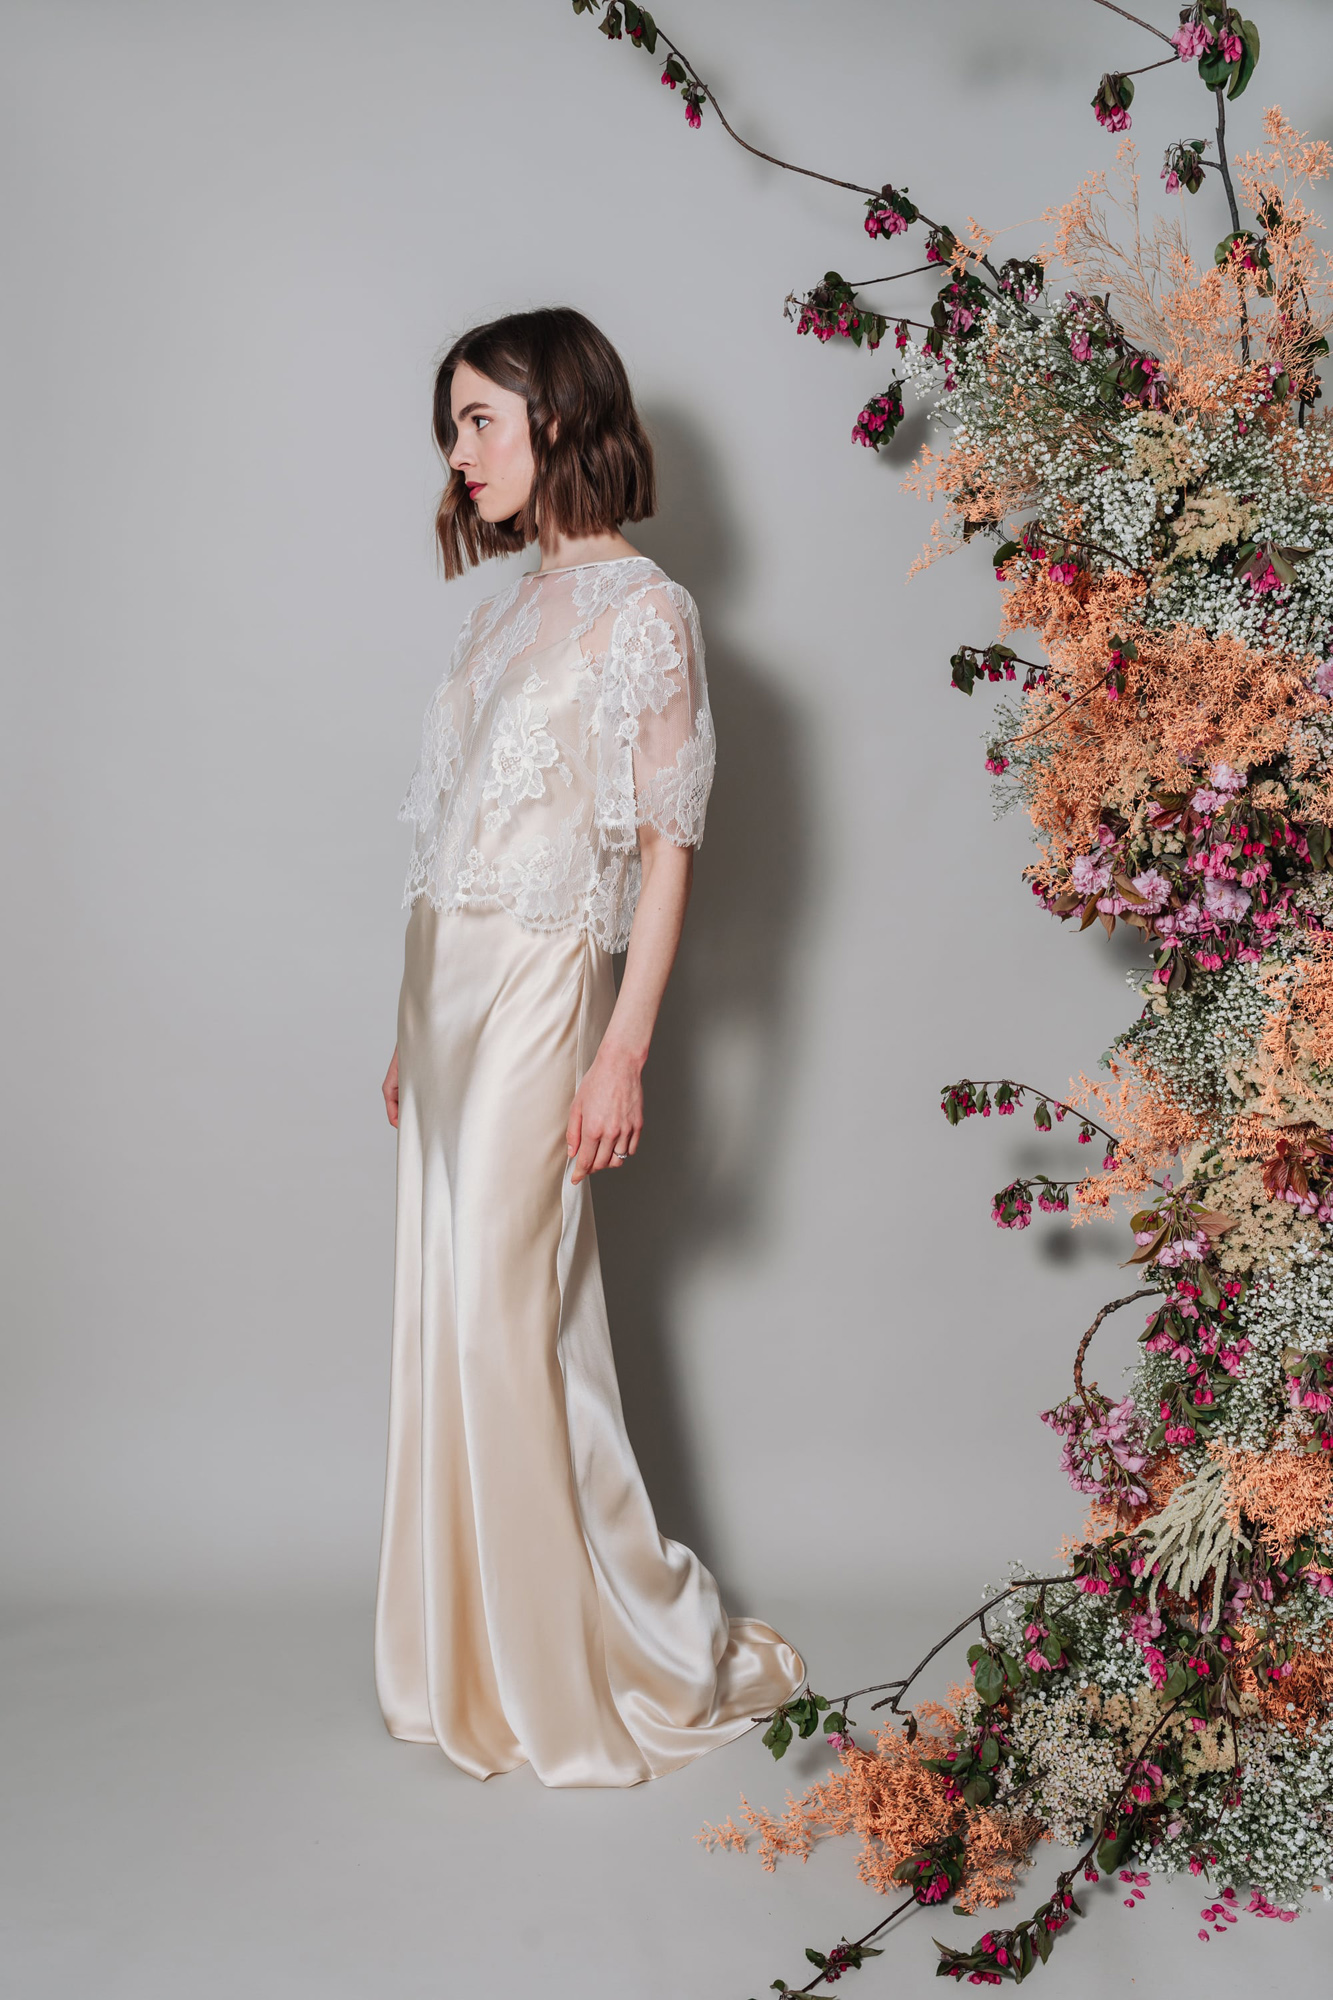 Kate-Beaumont-Sheffield-Rosa-Floral-Lace-Jacket-Thistle-Bias-Cut-Pearl-Silk-Wedding-Gown-4.jpg